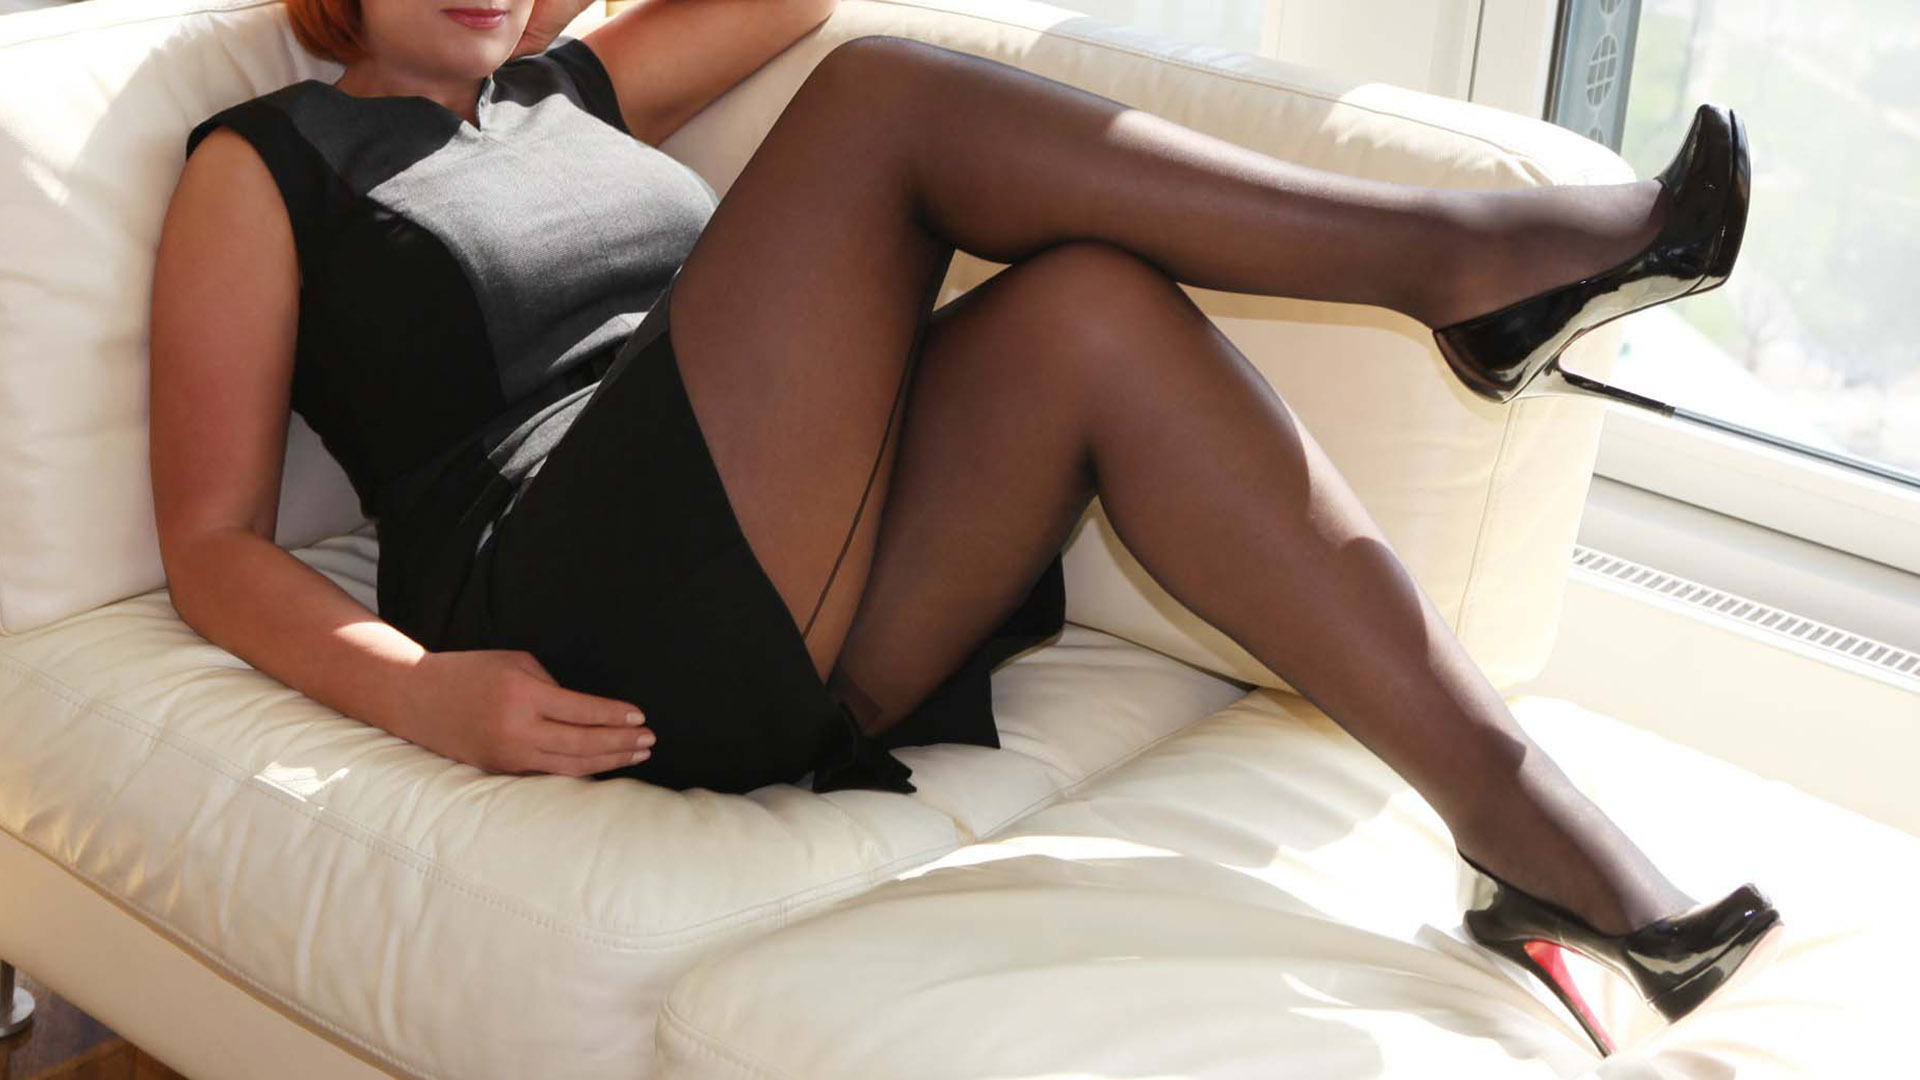 Sofia businesswoman and VIP luxury courtesan in Louboutin high heels lying on the couch during the break